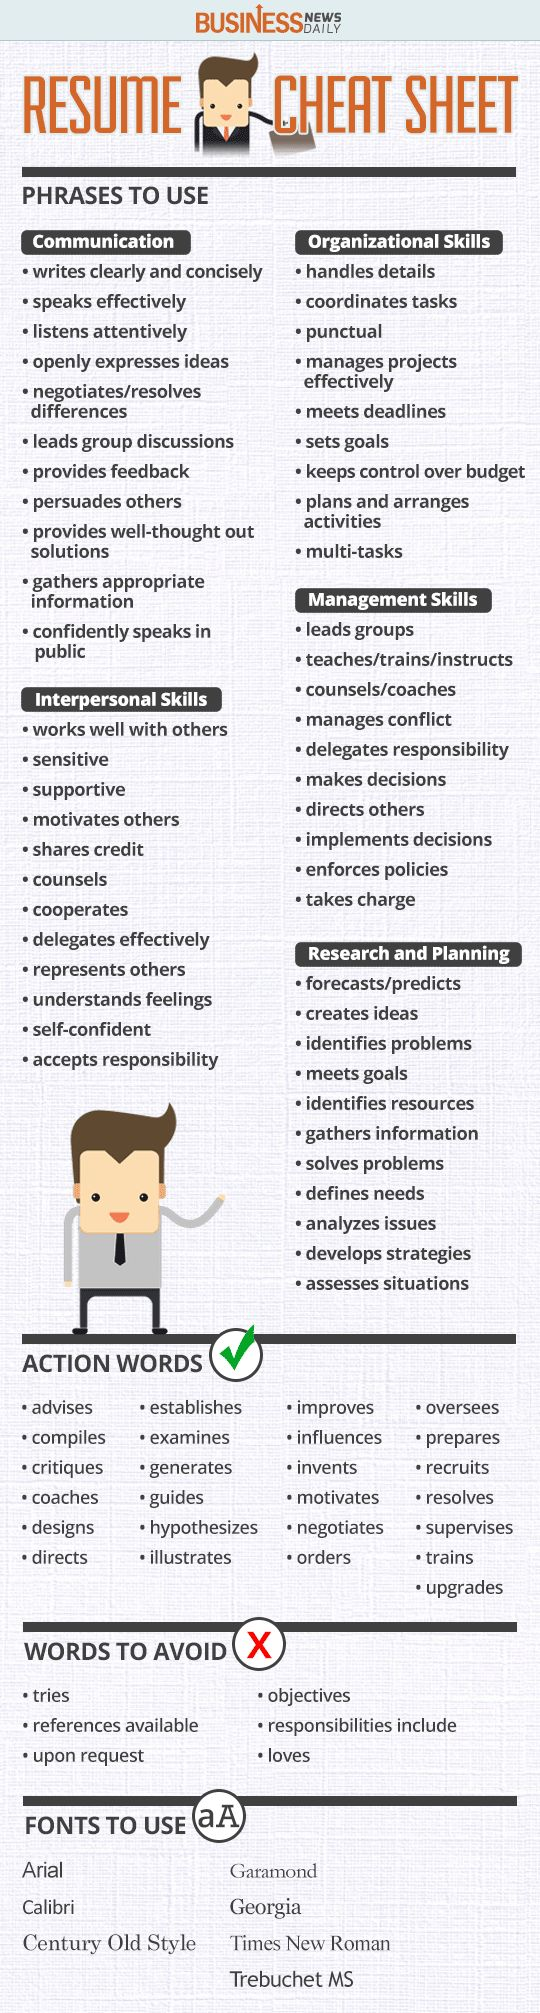 Opposenewapstandardsus  Personable  Ideas About Resume On Pinterest  Cv Format Resume Cv And  With Gorgeous Resume Cheat Sheet Infographic Andrews Almost Done With A Complete Unit On Employment Which With Breathtaking Sales Rep Resume Example Also Description For Resume In Addition Sales Associate Resume Samples And Professional Engineering Resume As Well As Resume Hints Additionally Civil Engineer Resume Sample From Pinterestcom With Opposenewapstandardsus  Gorgeous  Ideas About Resume On Pinterest  Cv Format Resume Cv And  With Breathtaking Resume Cheat Sheet Infographic Andrews Almost Done With A Complete Unit On Employment Which And Personable Sales Rep Resume Example Also Description For Resume In Addition Sales Associate Resume Samples From Pinterestcom